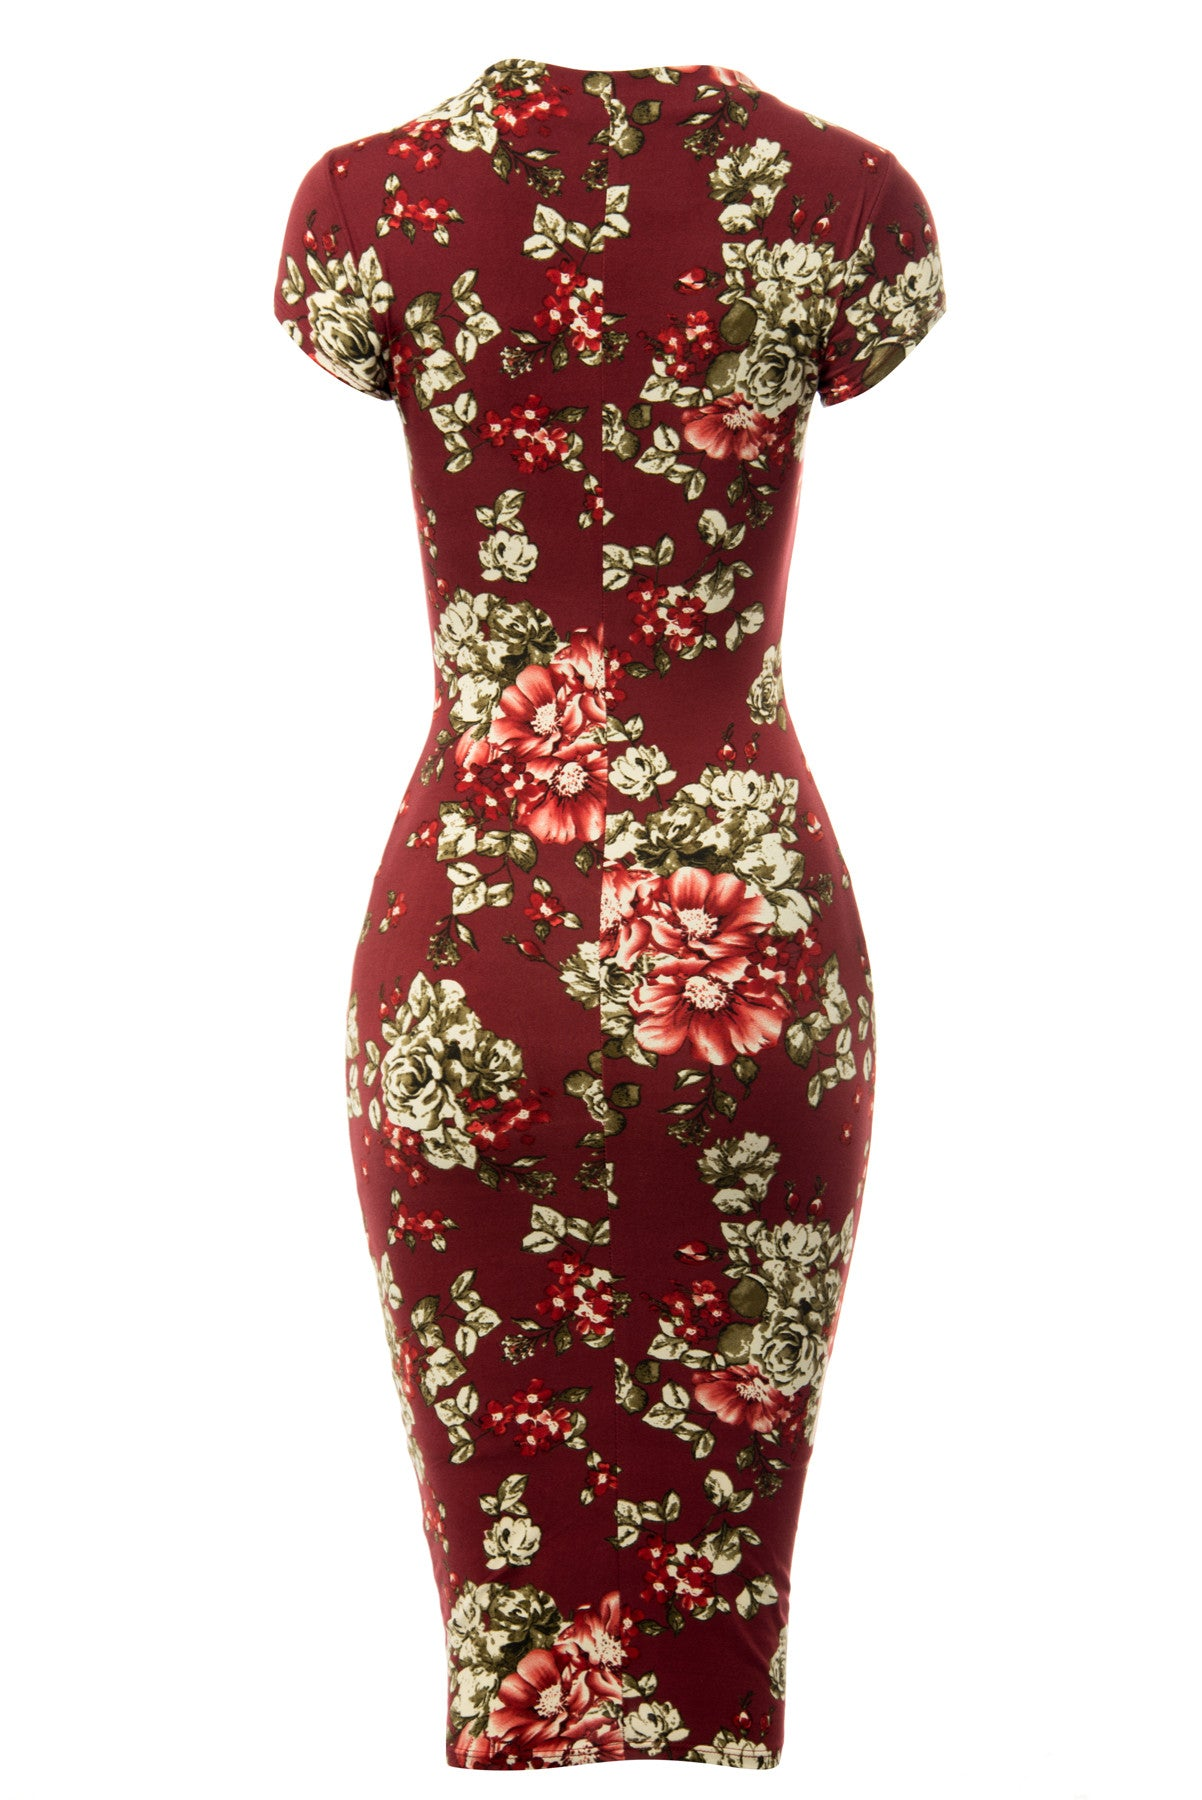 Brandi Floral Burgundy Midi Dress - Fashion Effect Store  - 5